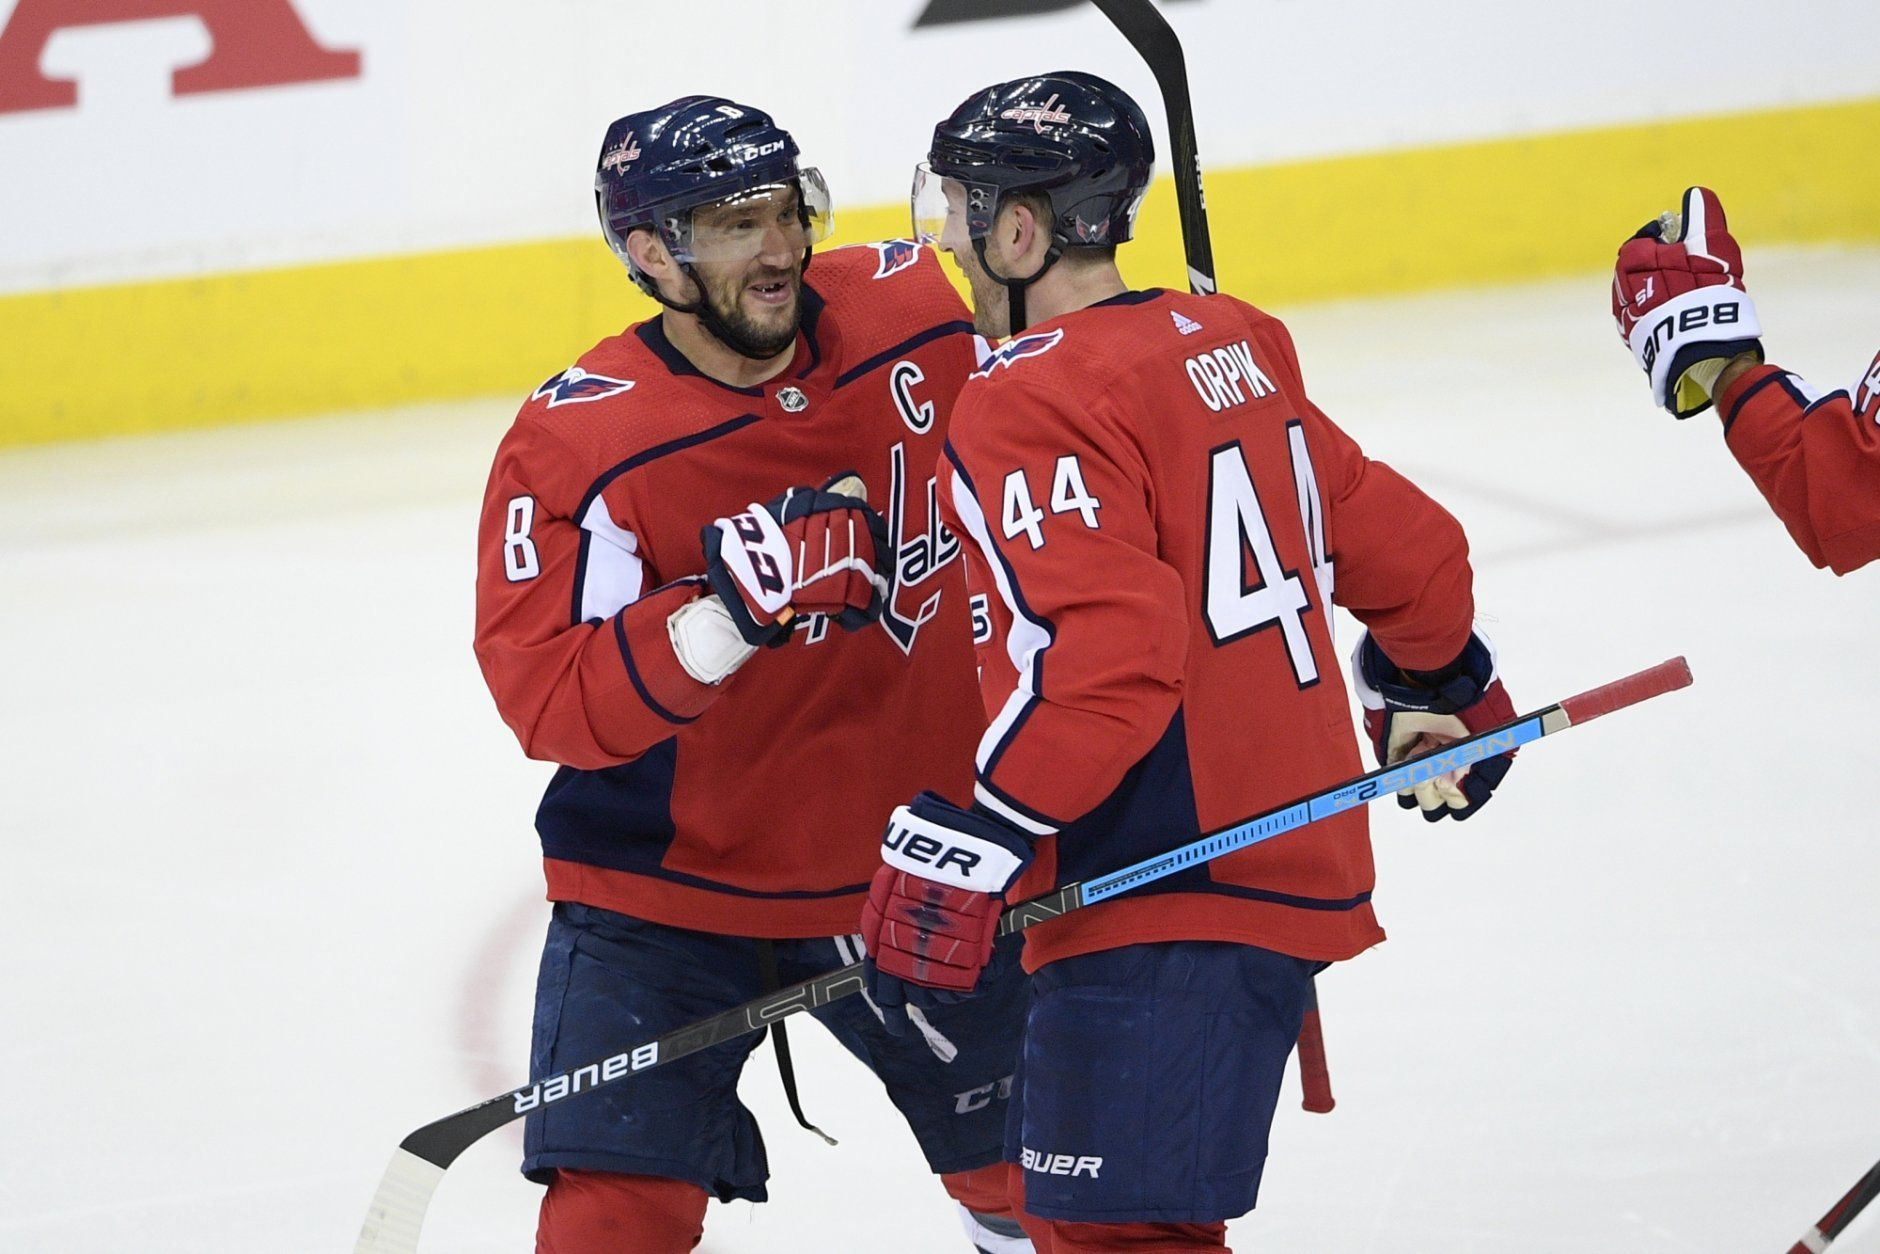 Washington Capitals left wing Alex Ovechkin (8), of Russia, celebrates with defenseman Brooks Orpik (44) after overtime in Game 2 of an NHL hockey first-round playoff series against the Carolina Hurricanes, Saturday, April 13, 2019, in Washington. The Capitals won 4-3 in overtime. (AP Photo/Nick Wass)